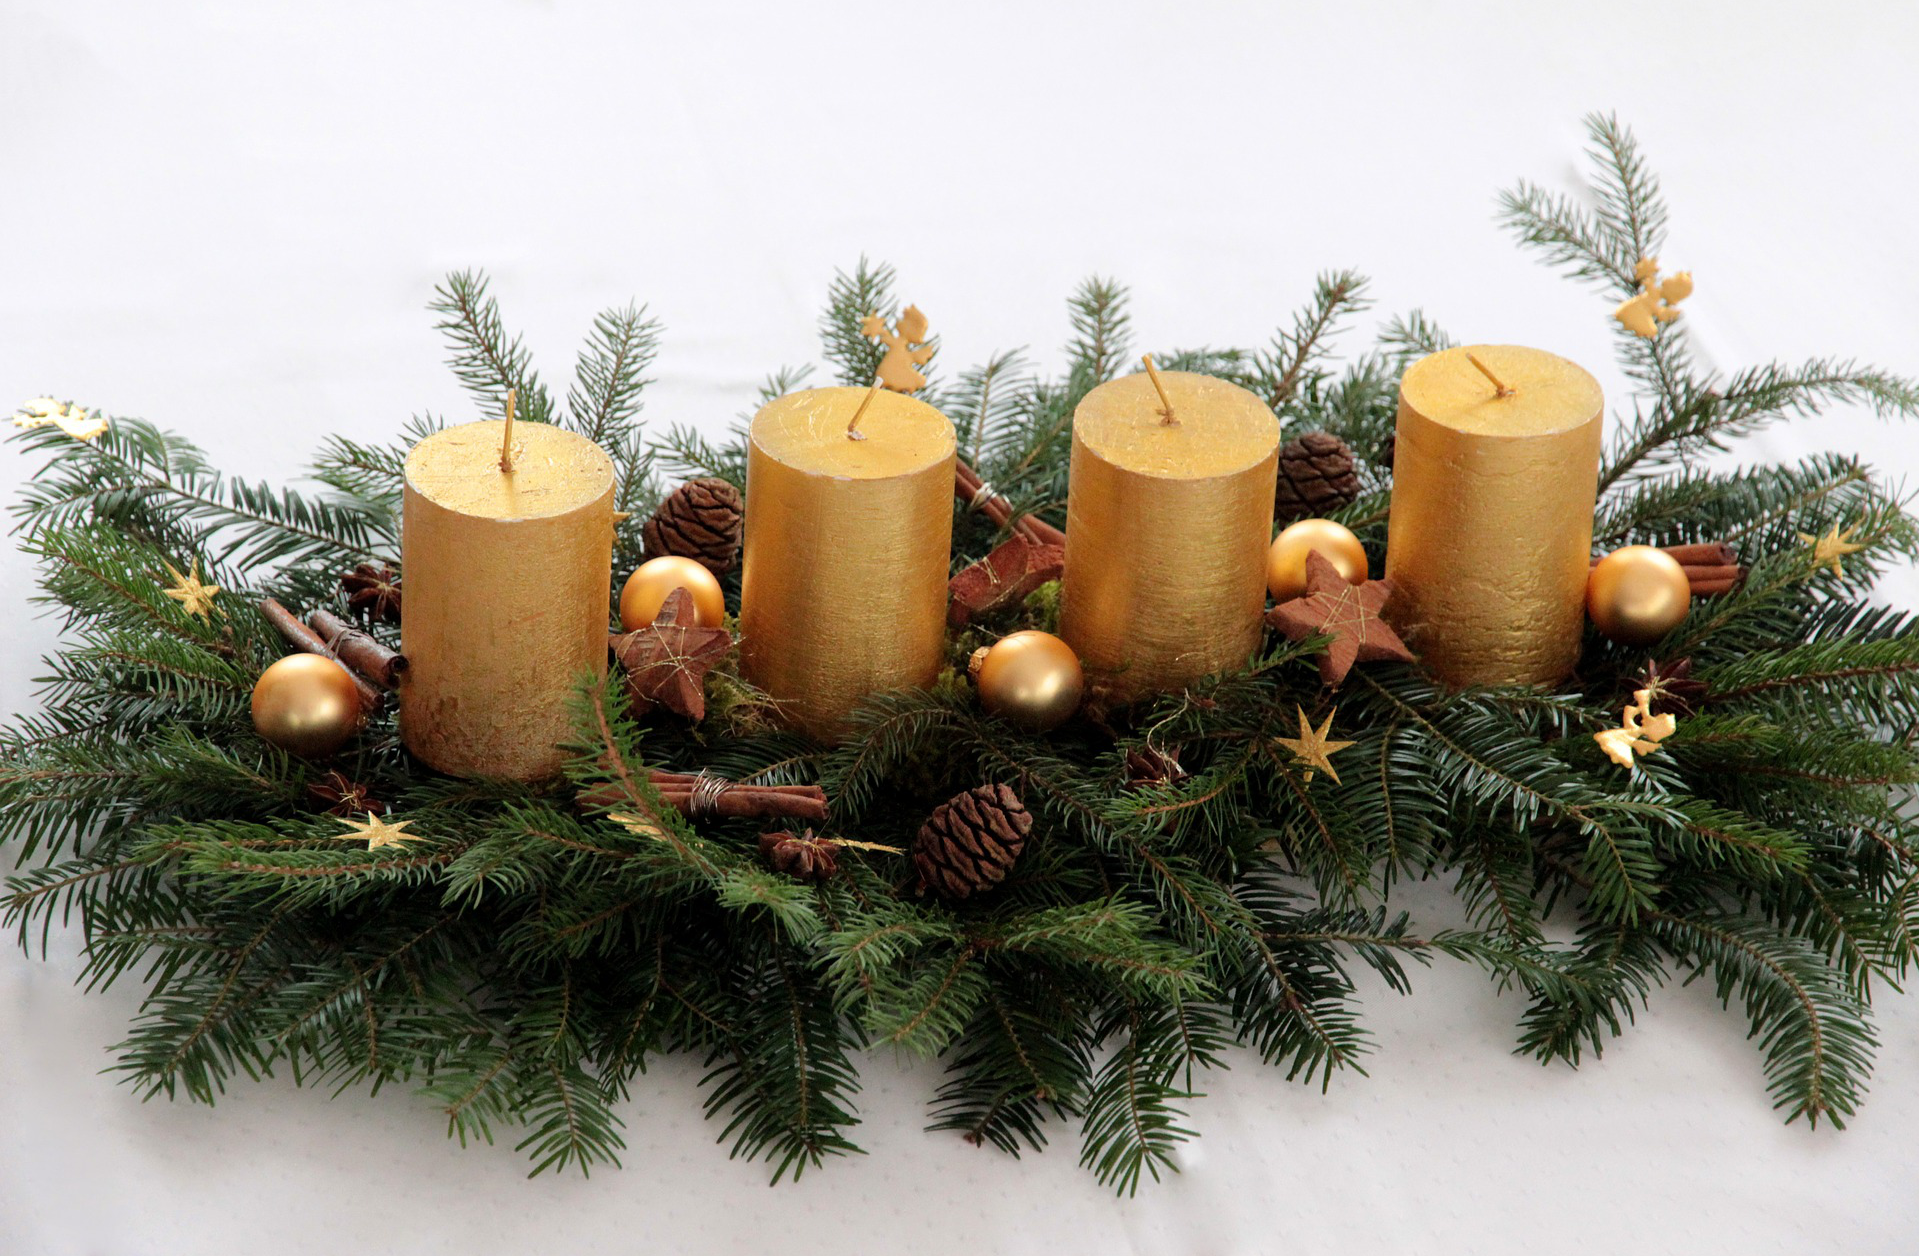 The importance of the Advent wreath